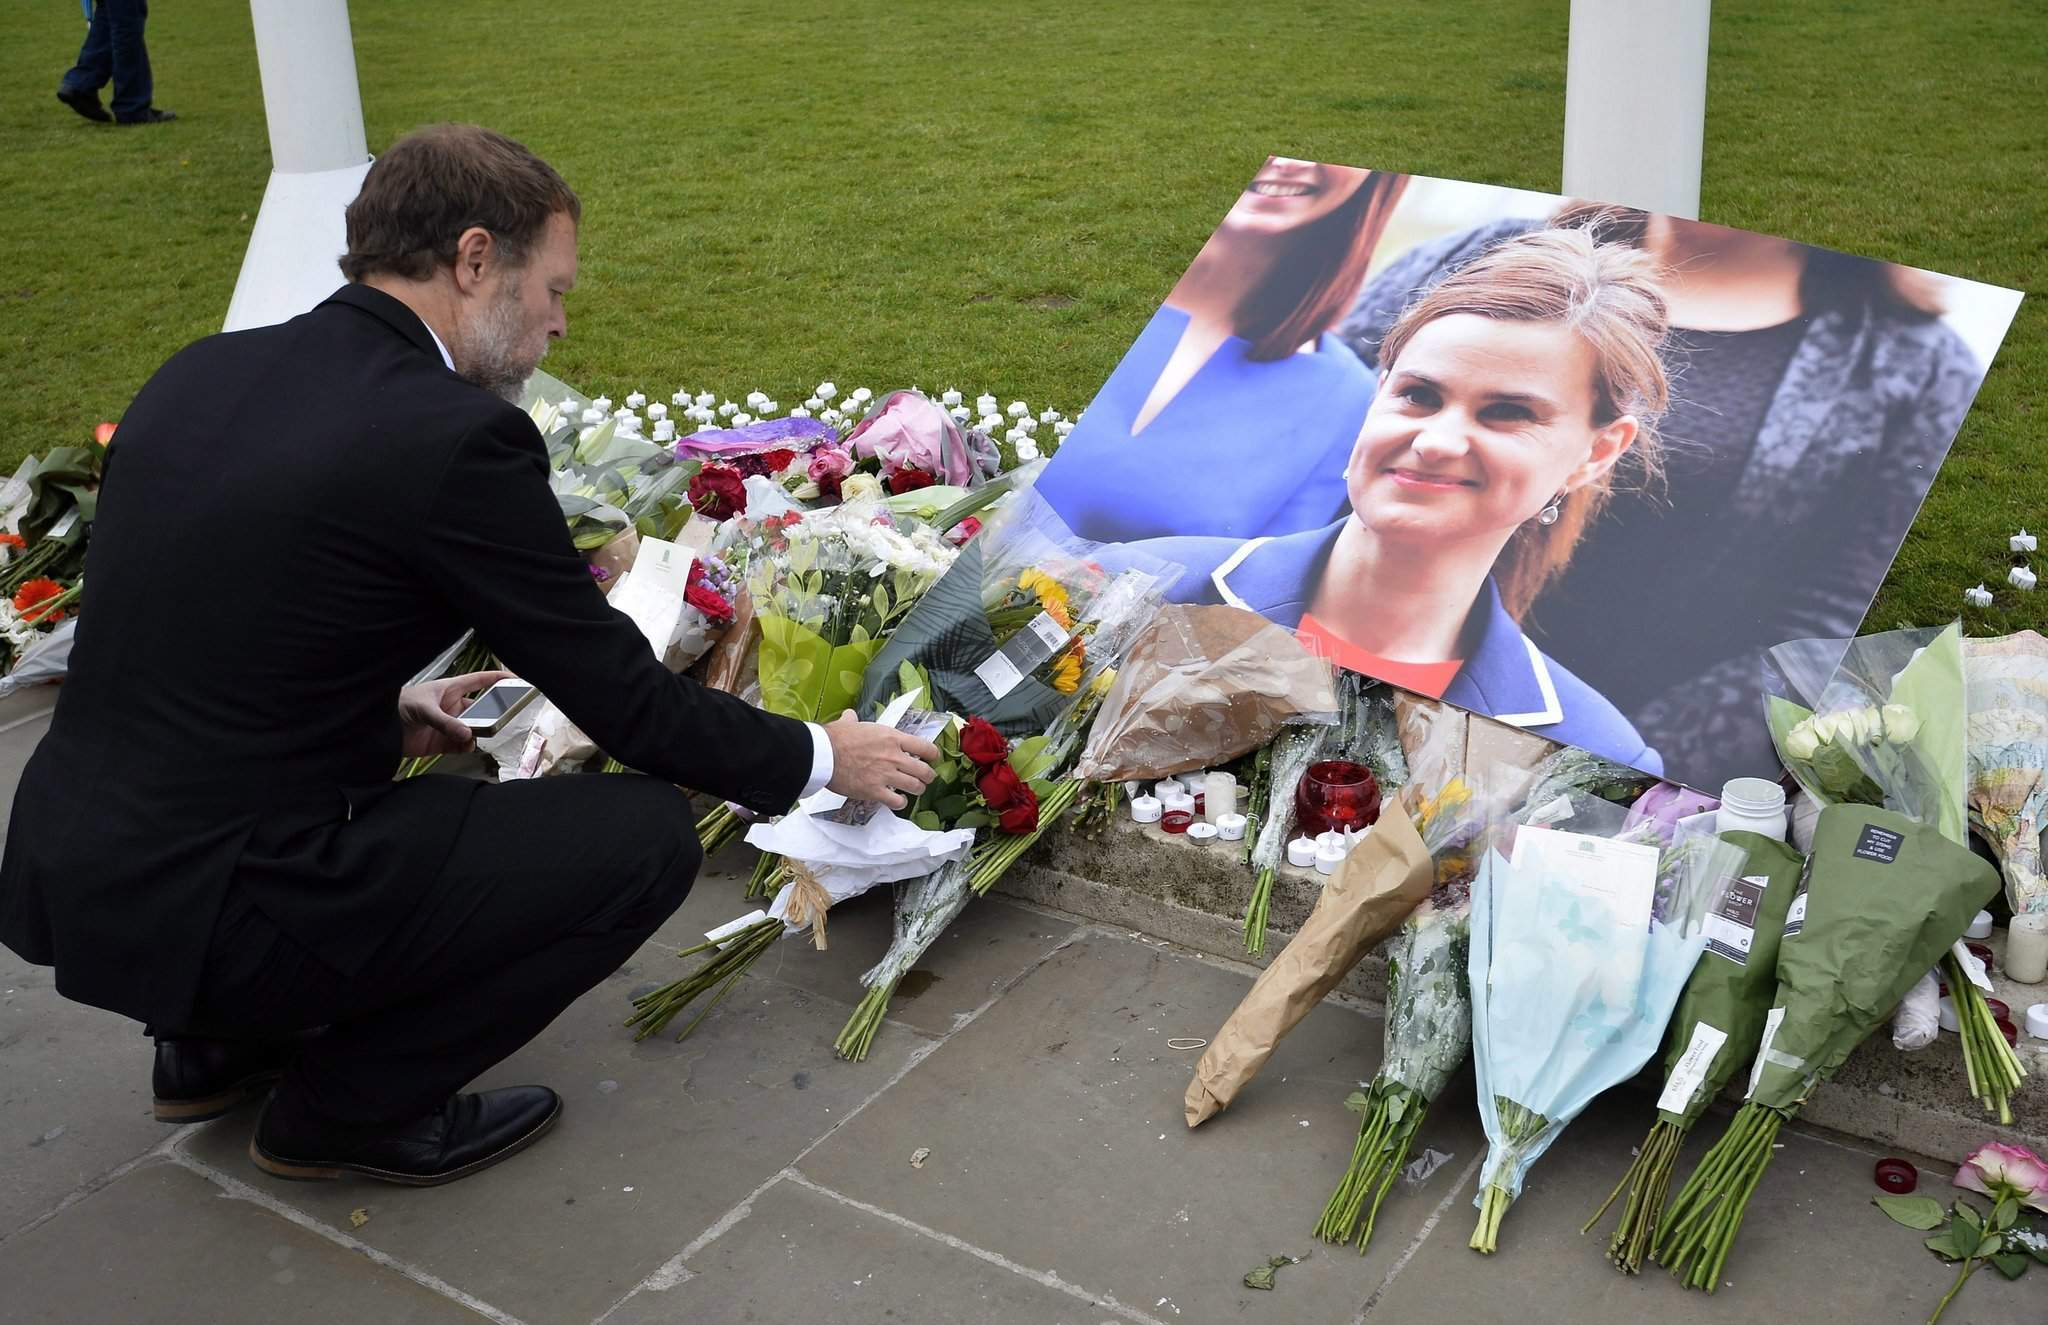 Hungary's parliament sends condolences over murdered British MP